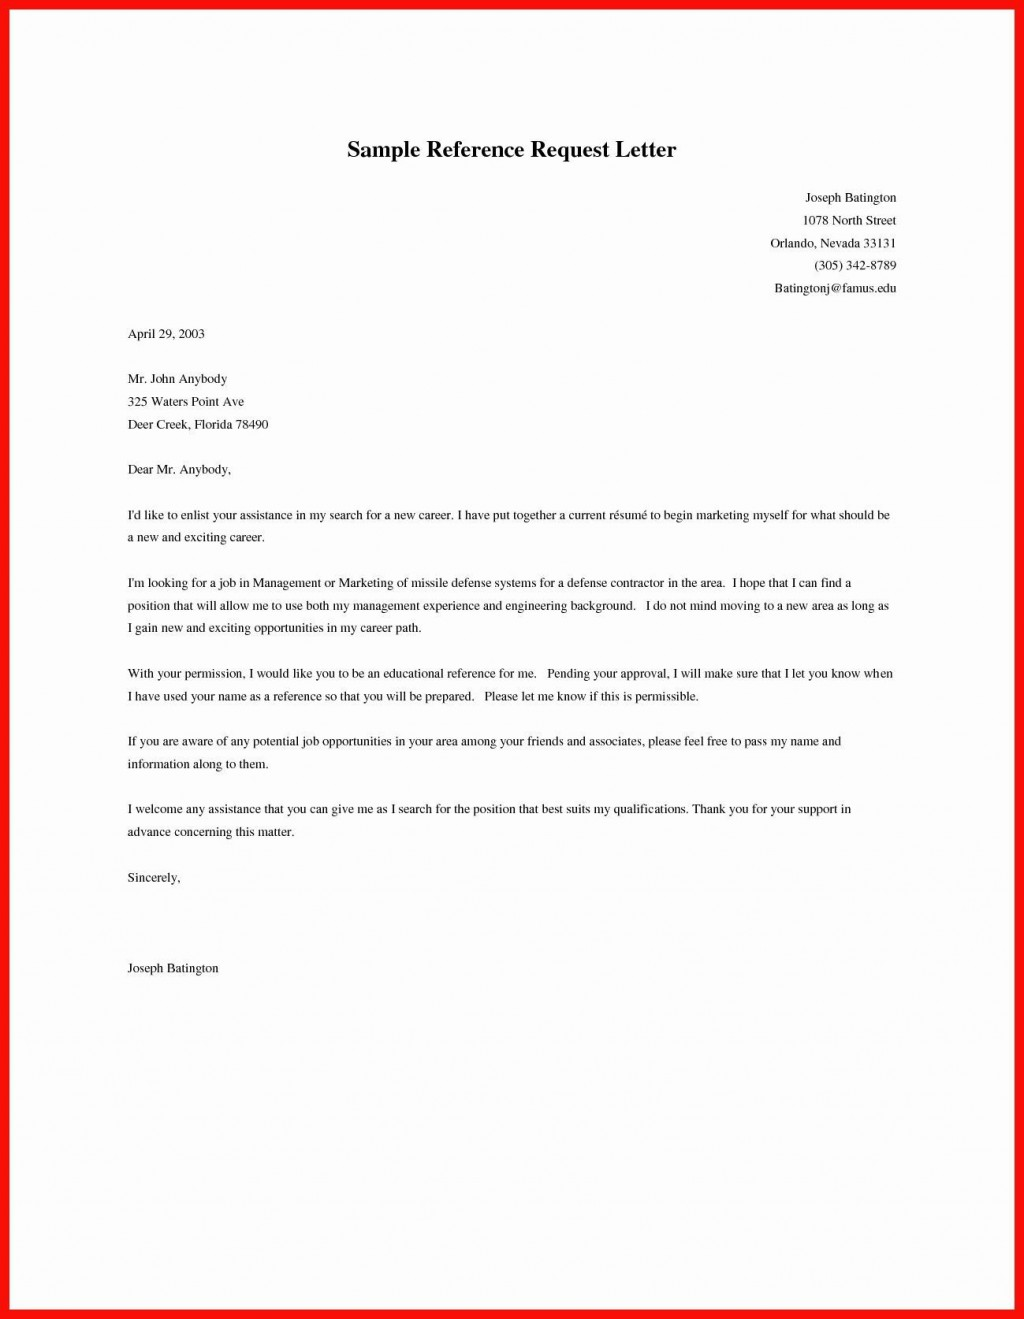 002 Top Sample Request For Letter Of Recommendation High Resolution  From Previou Employer NursingLarge